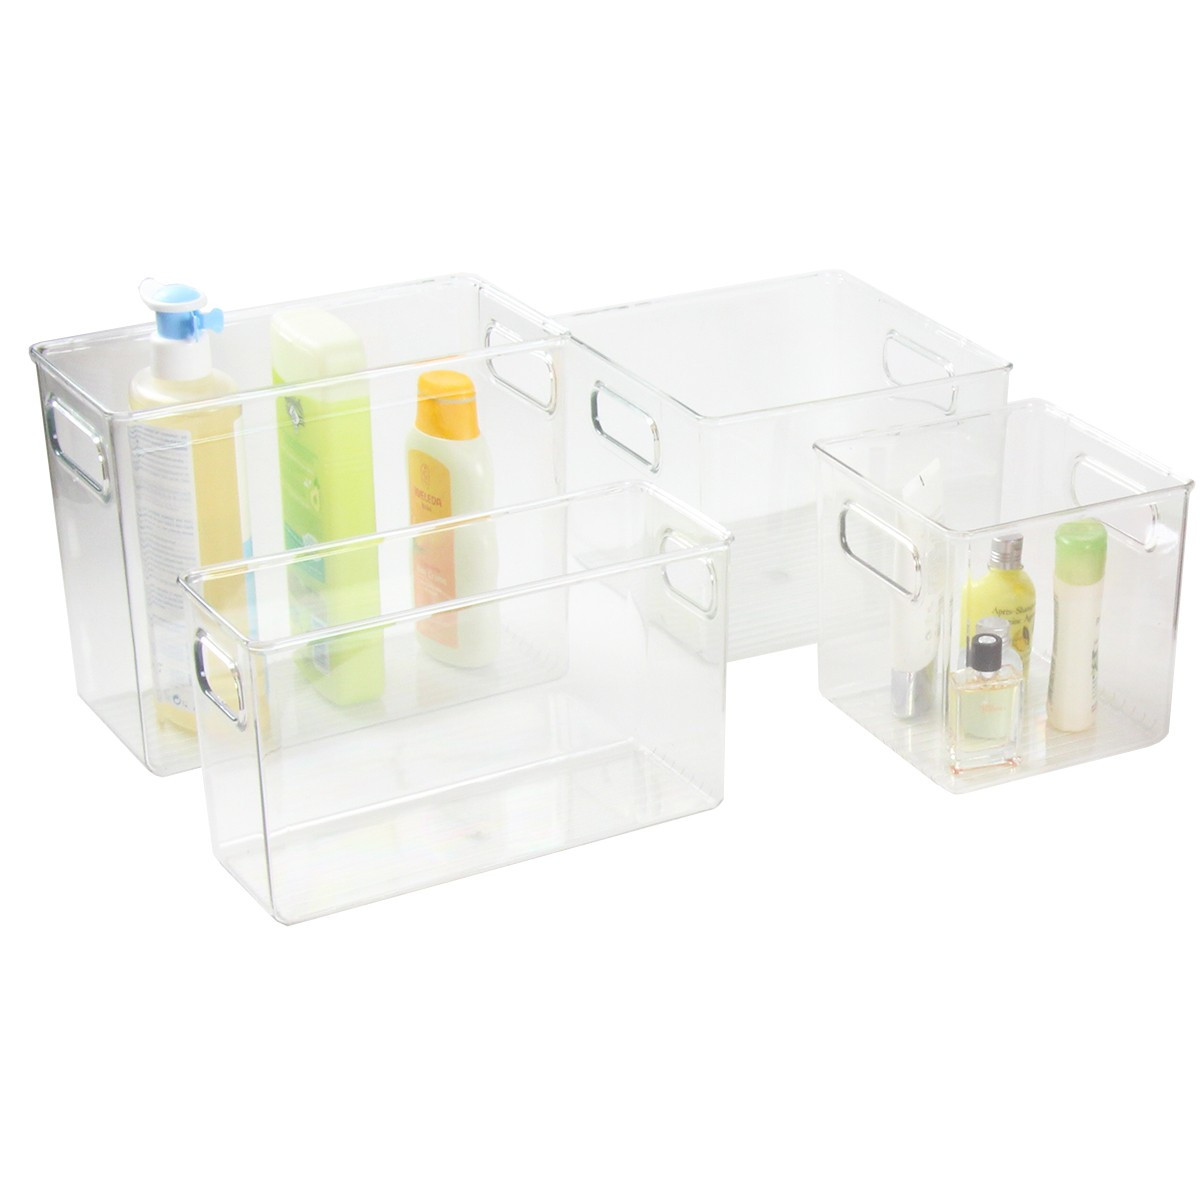 organisateur placard transparent rangement cuisine. Black Bedroom Furniture Sets. Home Design Ideas